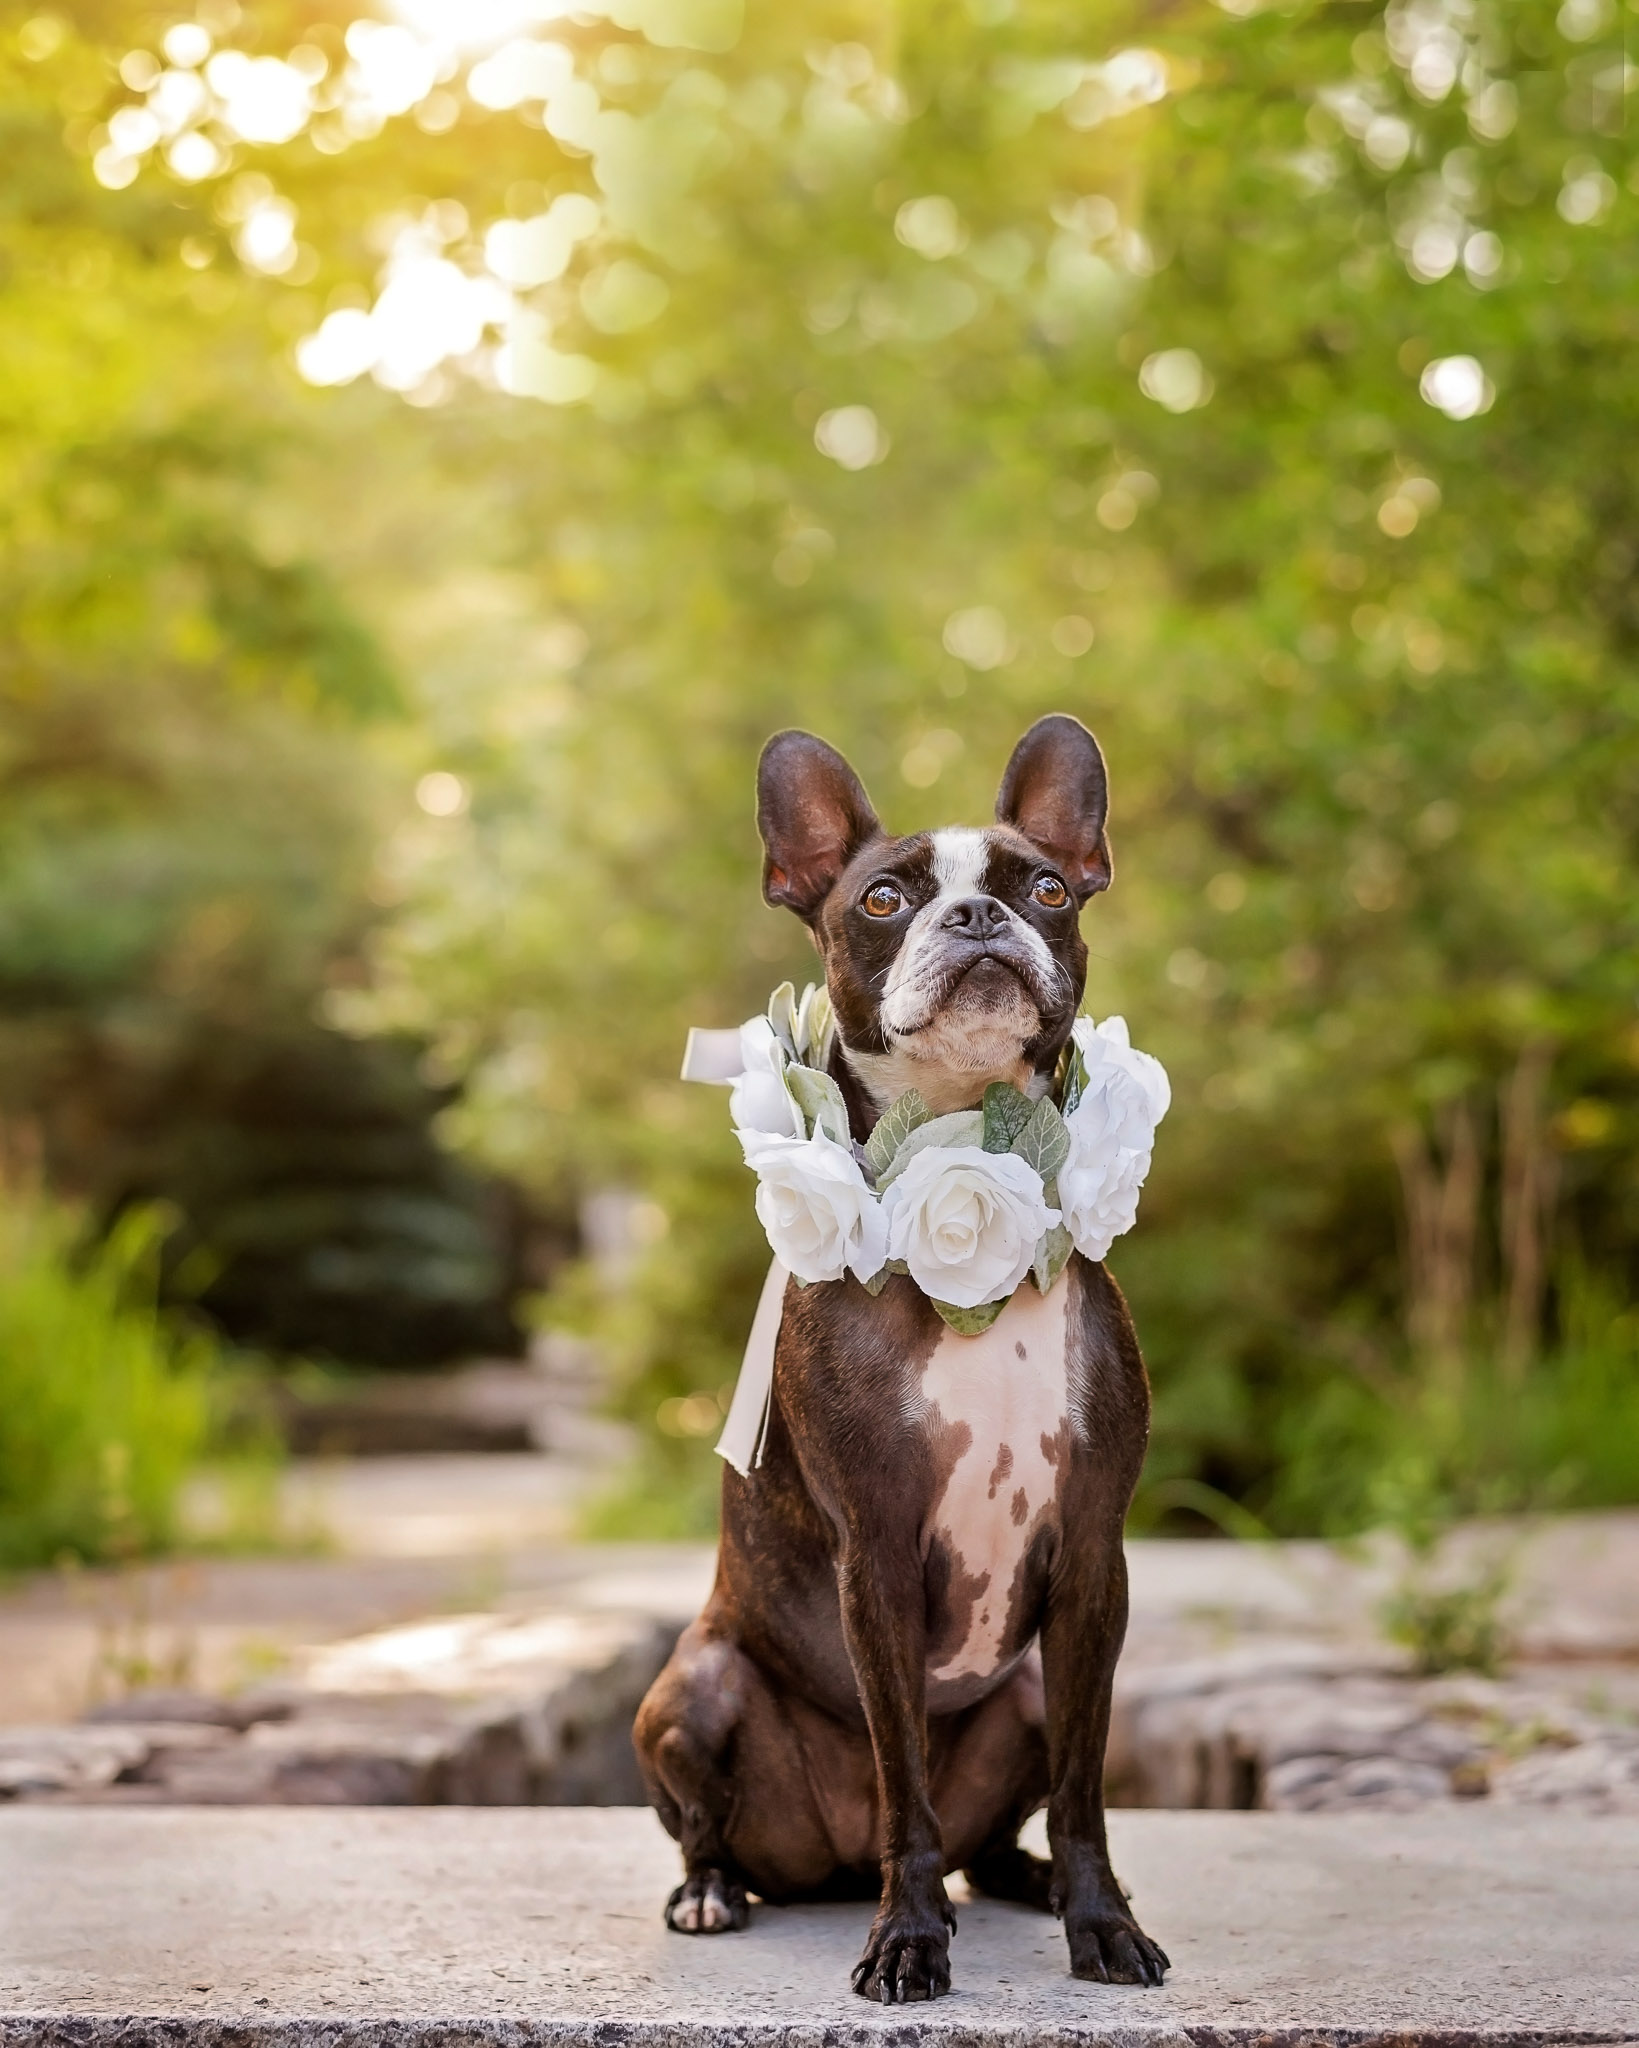 The first step in fininding the right location for dog photography is to look for the right light.